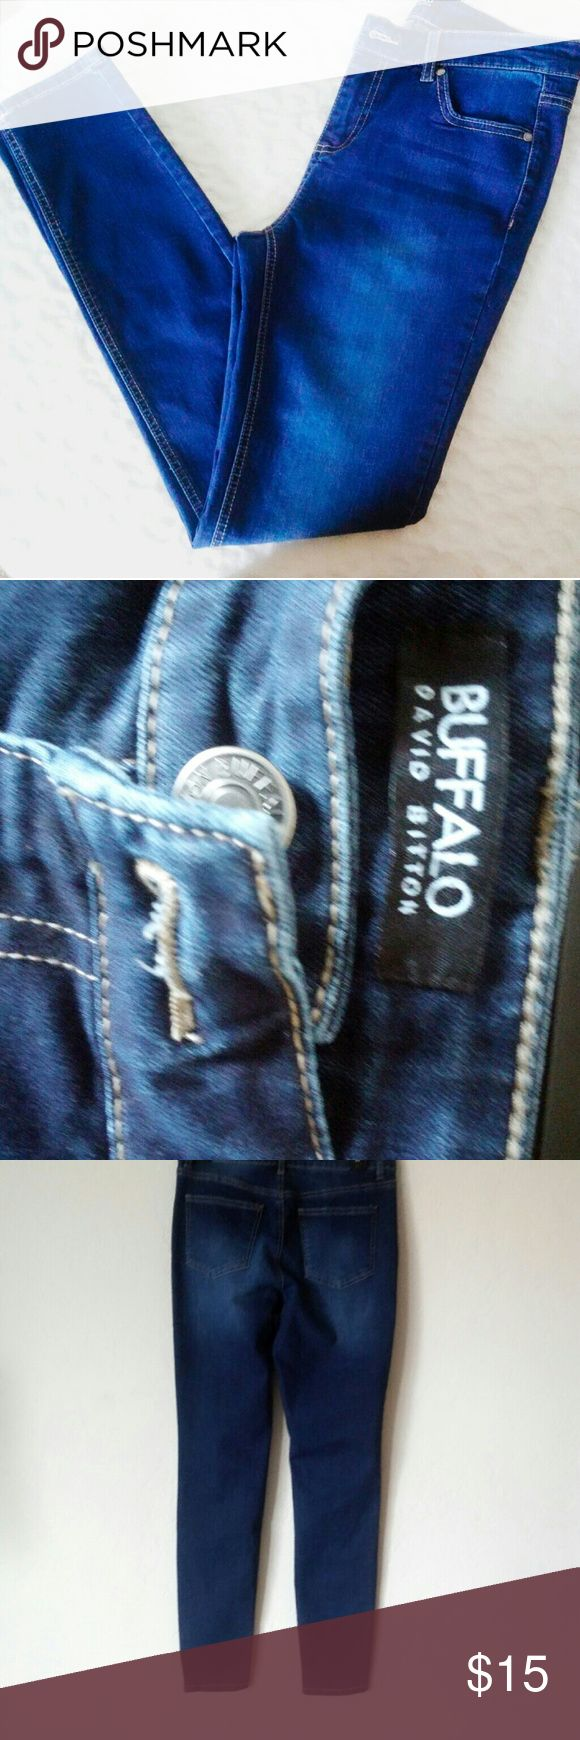 Buffalo Francesca Midrise Skinny Stretch Jeans Never been worn but the tags are off. Really adorable jeans that does well in accentuating your figure. Size 4/27 Buffalo David Bitton Jeans Skinny